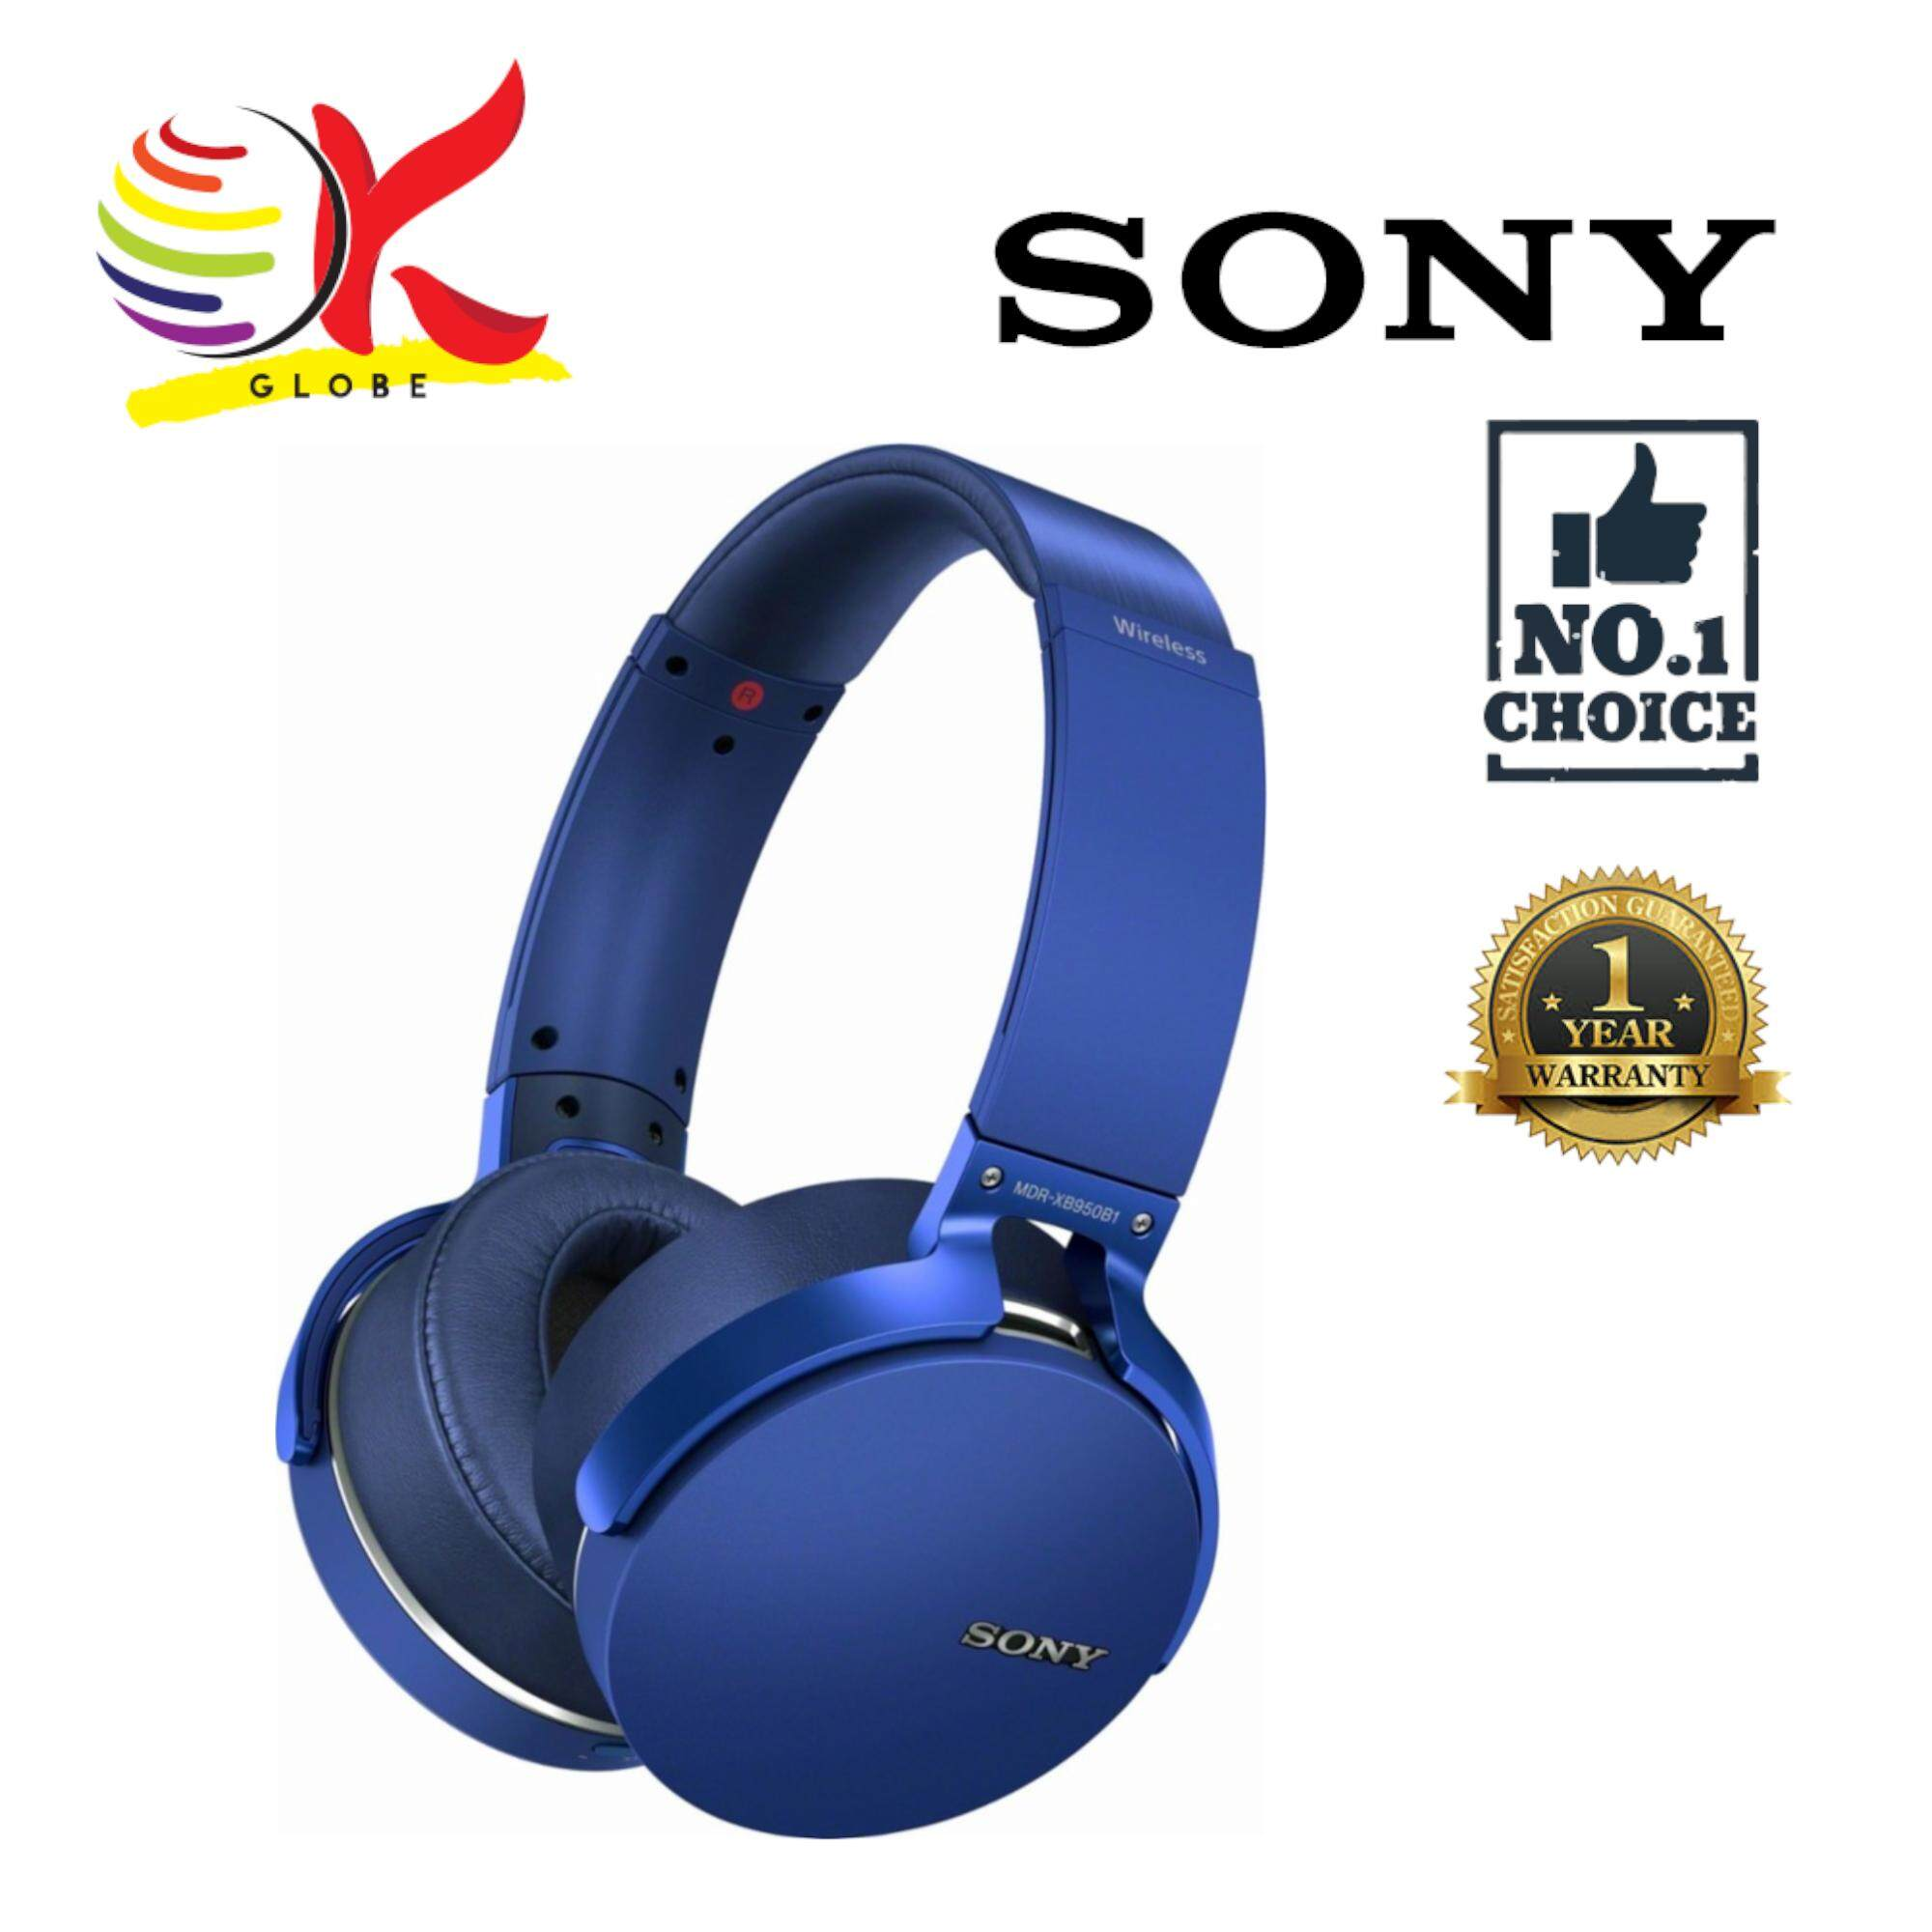 Sony Headphones Headsets In Ear Price Malaysia Mdr Xb55ap W White Headset Bt Extra Bass Xb950b1 P92477210e